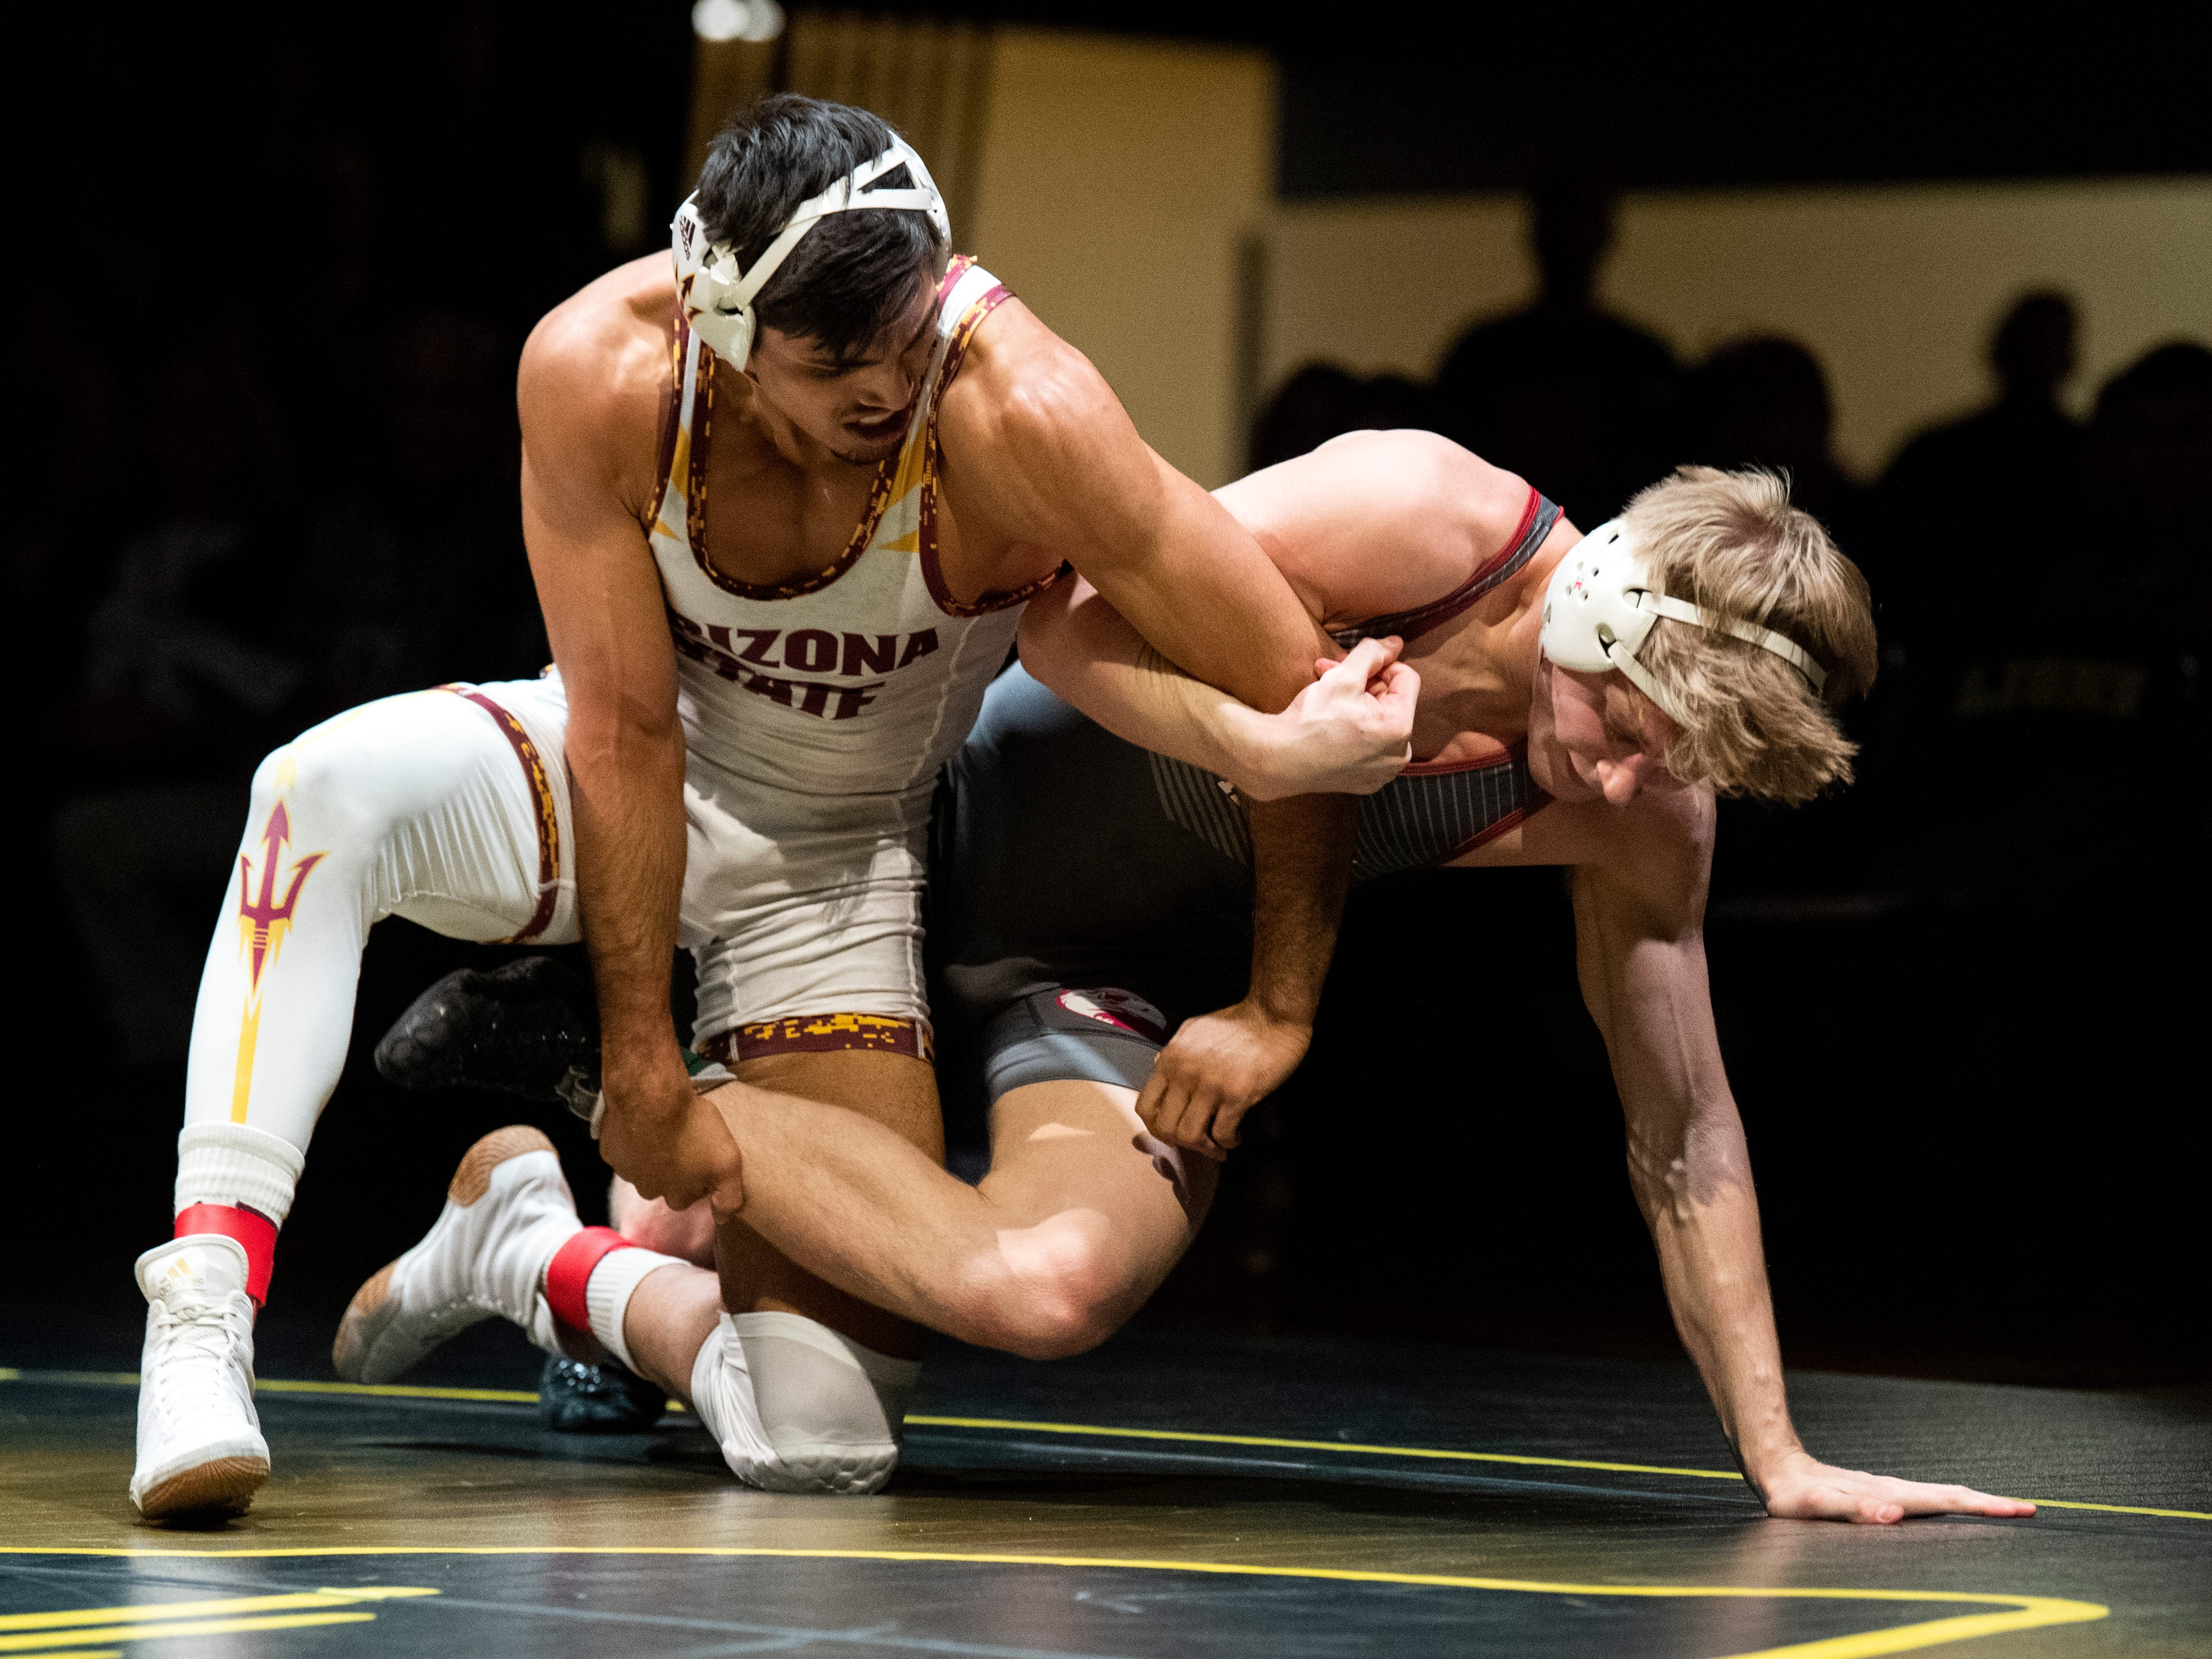 Arizona State's Zahid Valencia, left, wrestles with Lock Haven's Jared Siegrist during the 174-pound bout at Red Lion's Fitzkee Athletic Center on Friday, Jan. 25, 2019. Valencia topped Siegrist, 14-4. No. 22 Lock Haven upset No. 12 Arizona State, 23-14, in the first ever 'Rumble in the Jungle.'